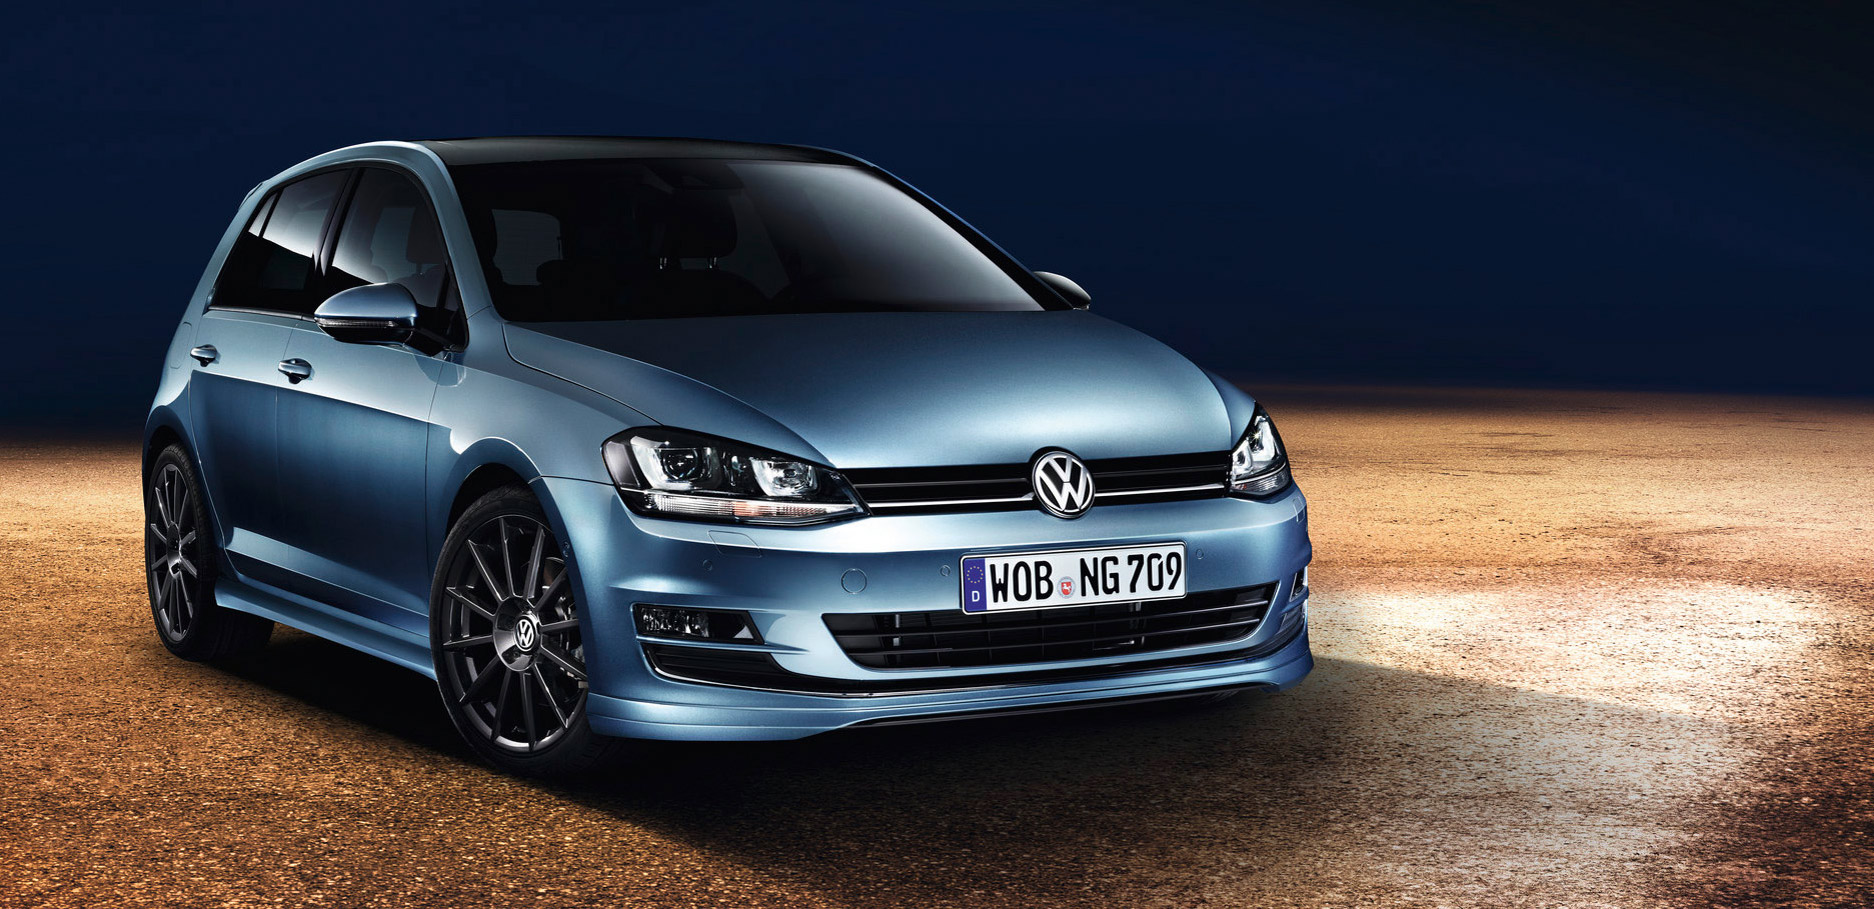 volkswagen-golf7-accessories-7